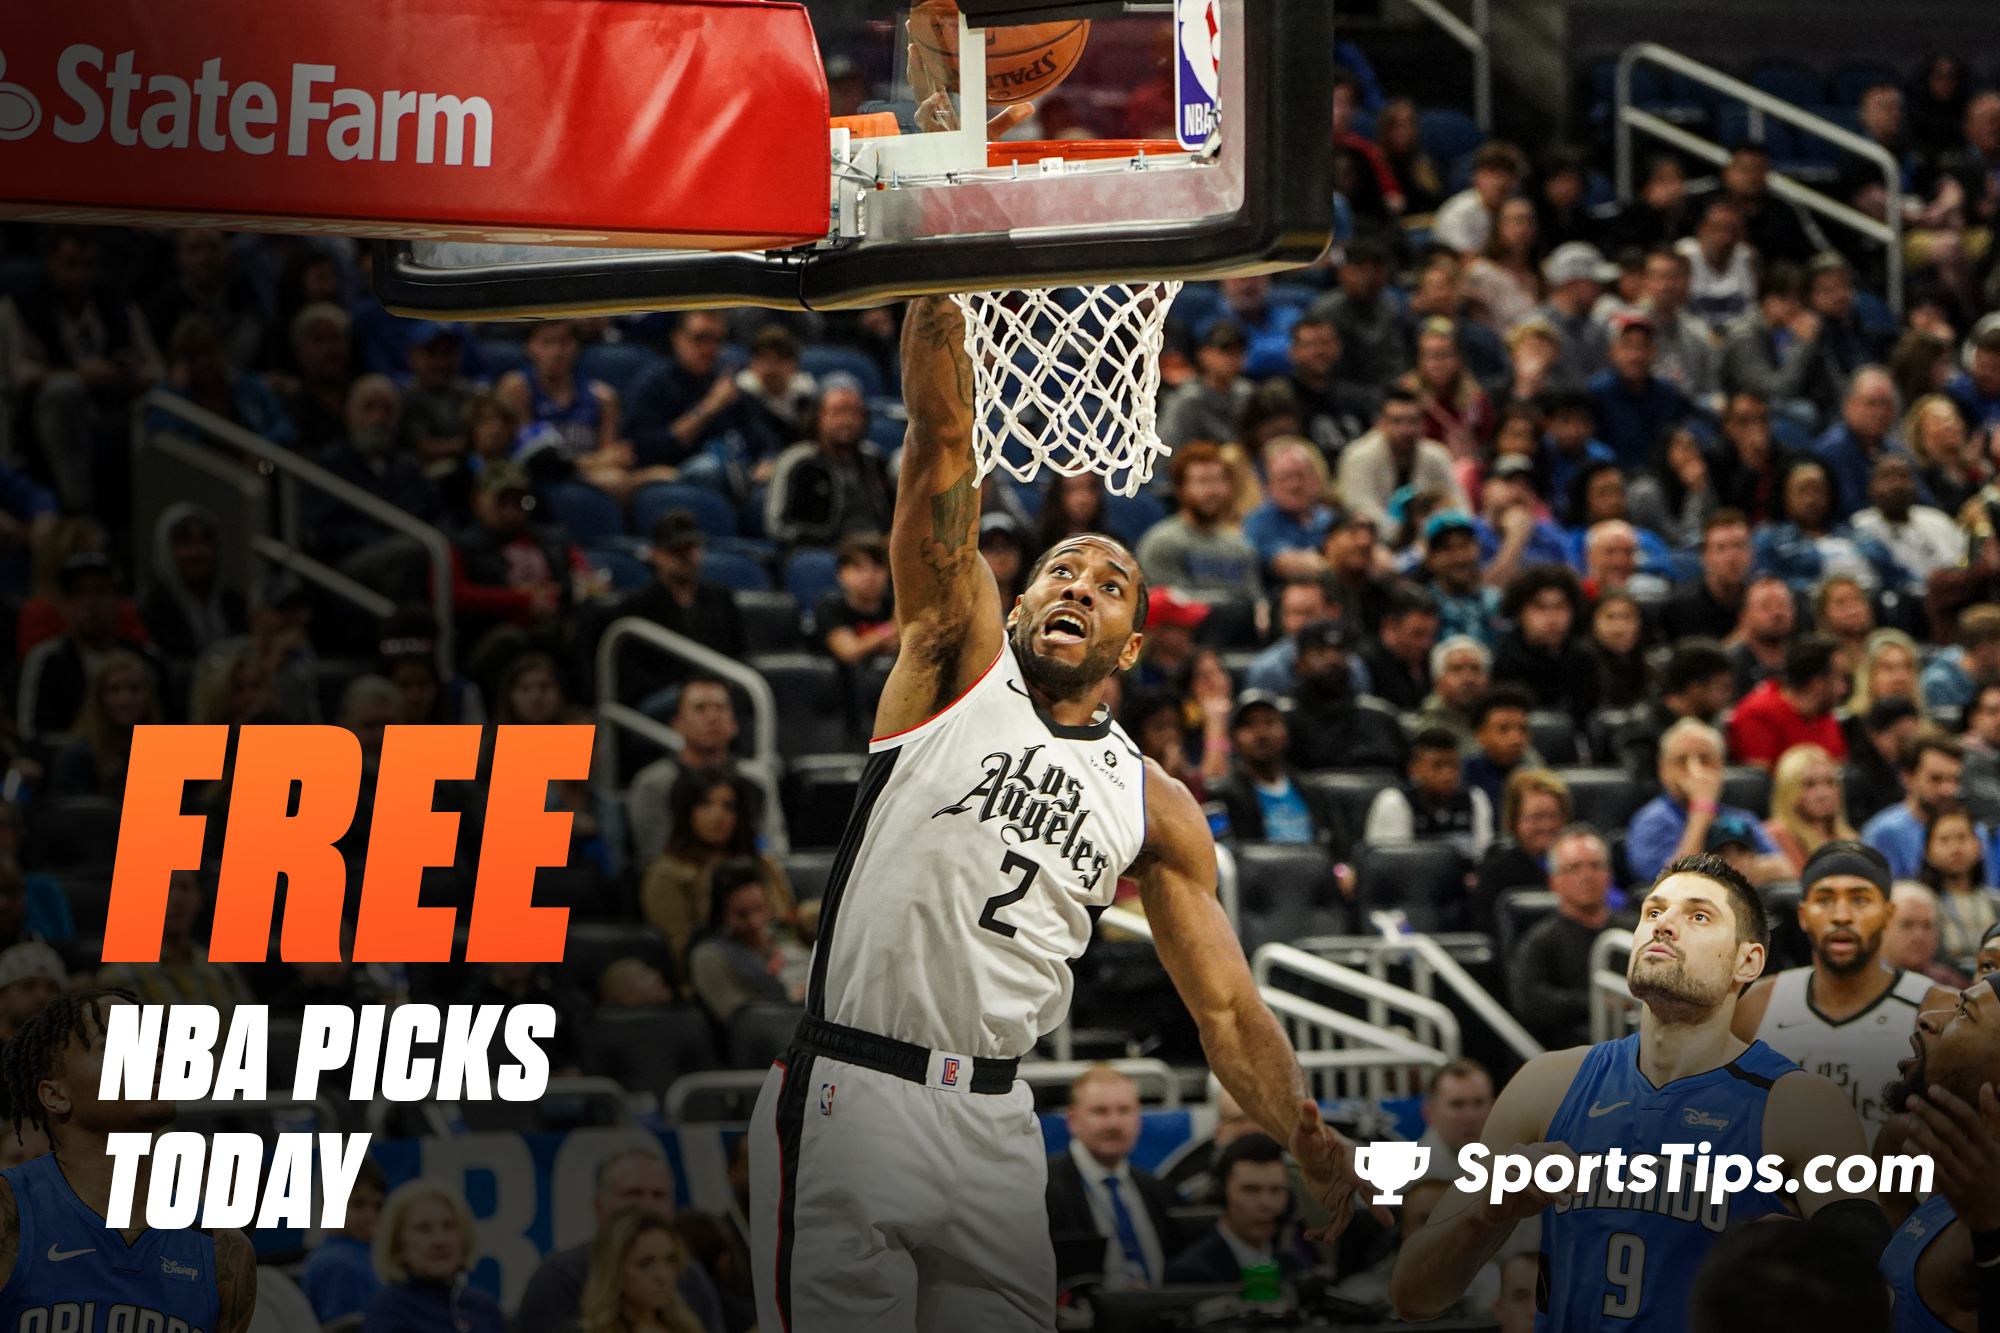 Free NBA Picks Today for Tuesday, March 30th, 2021